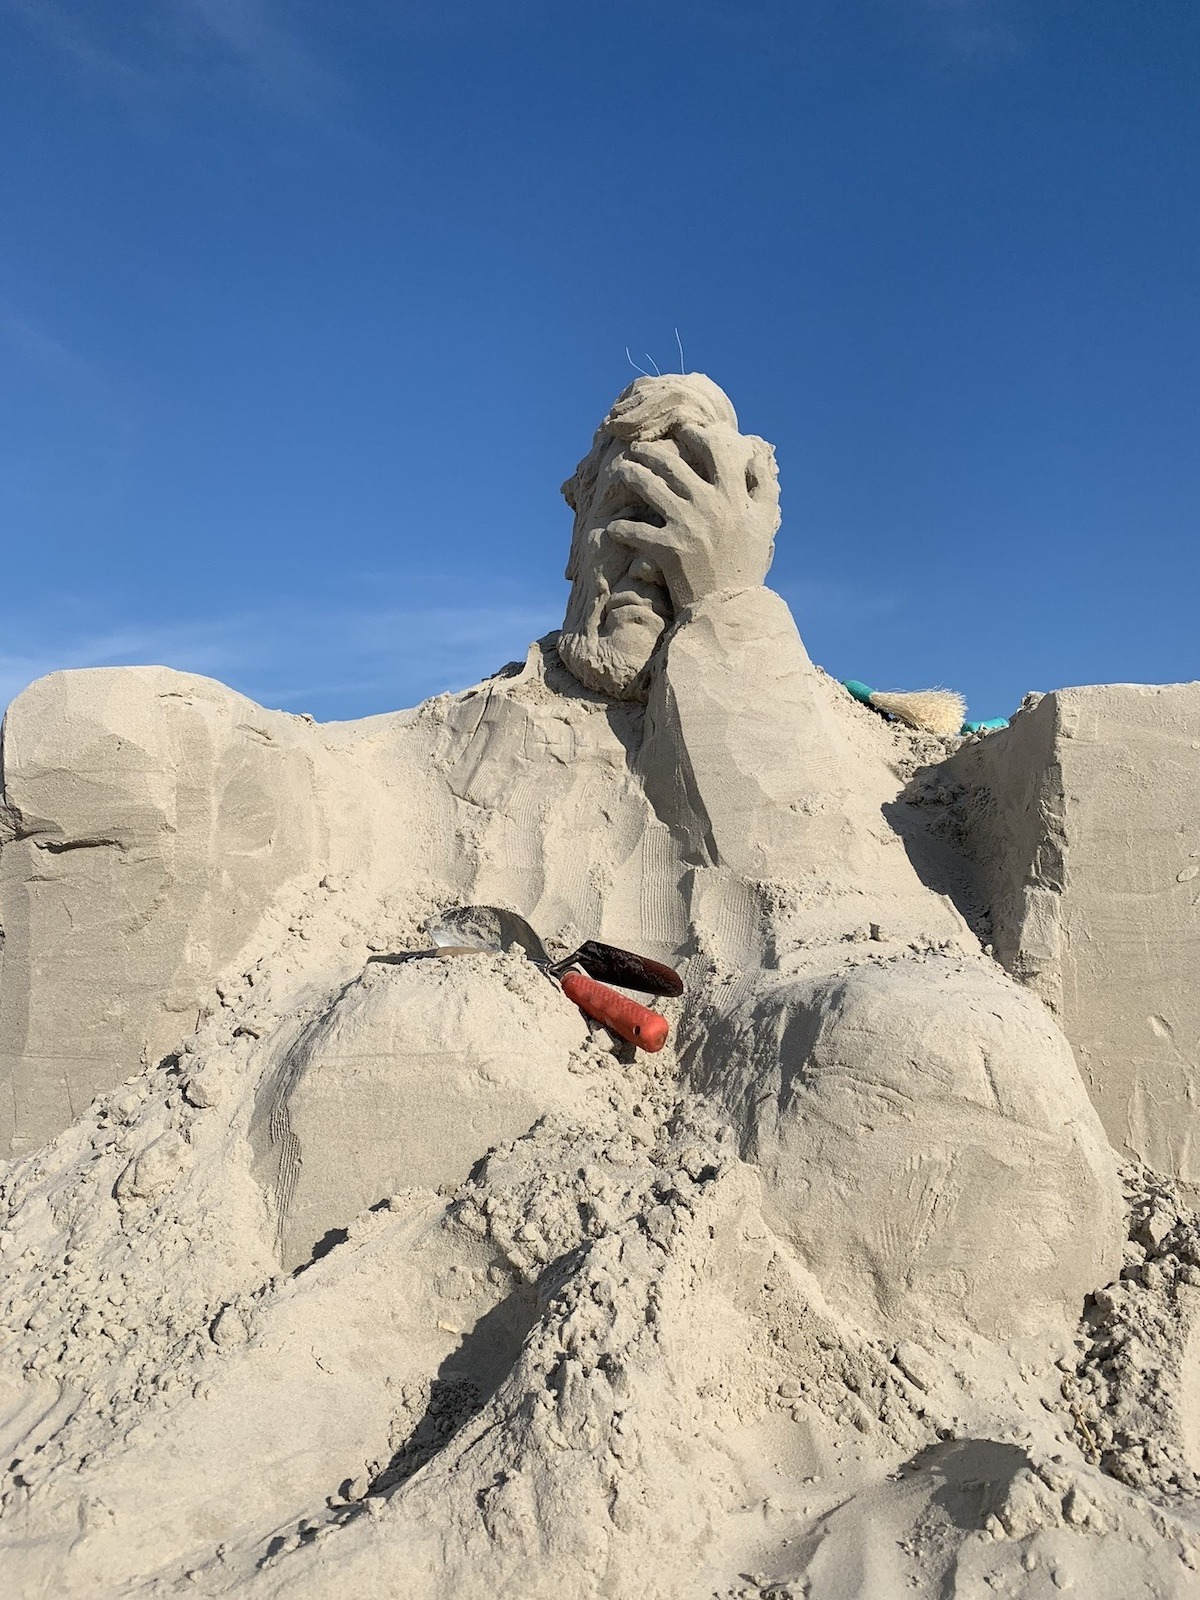 Sand Sculpture by Damon Langlois